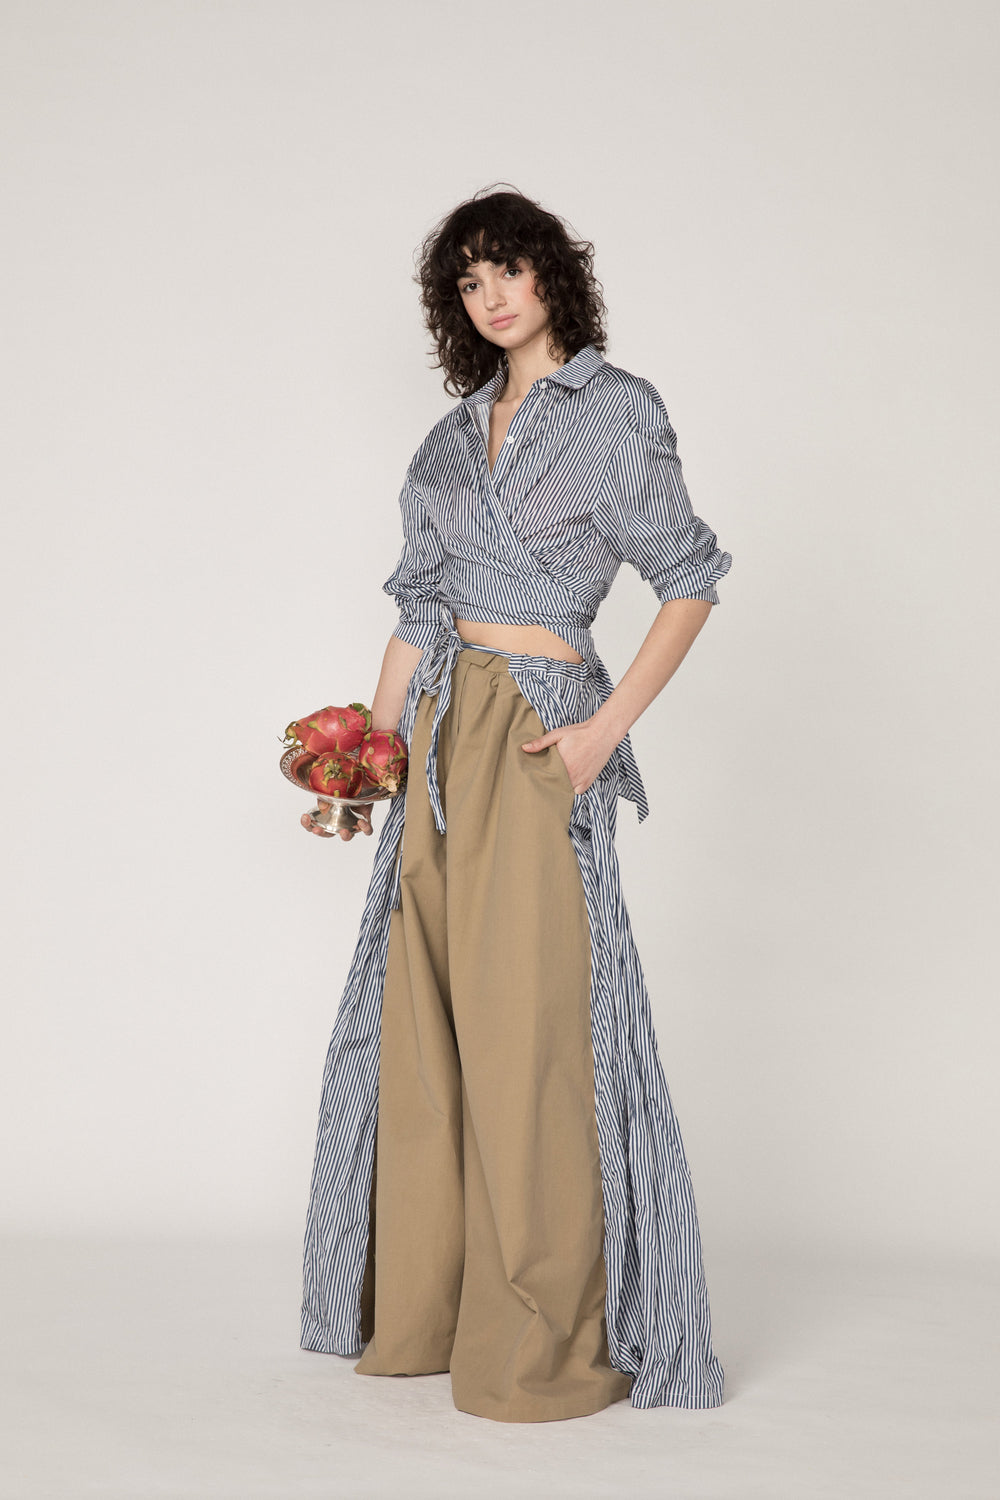 Rosie Assoulin Pre-Fall 2019 Superhero Pant II. Wide leg pants with caped skirting. Ties in front. Adjustable drawstring waist. Khaki. 100% Cotton. Sizes 0 - 12.